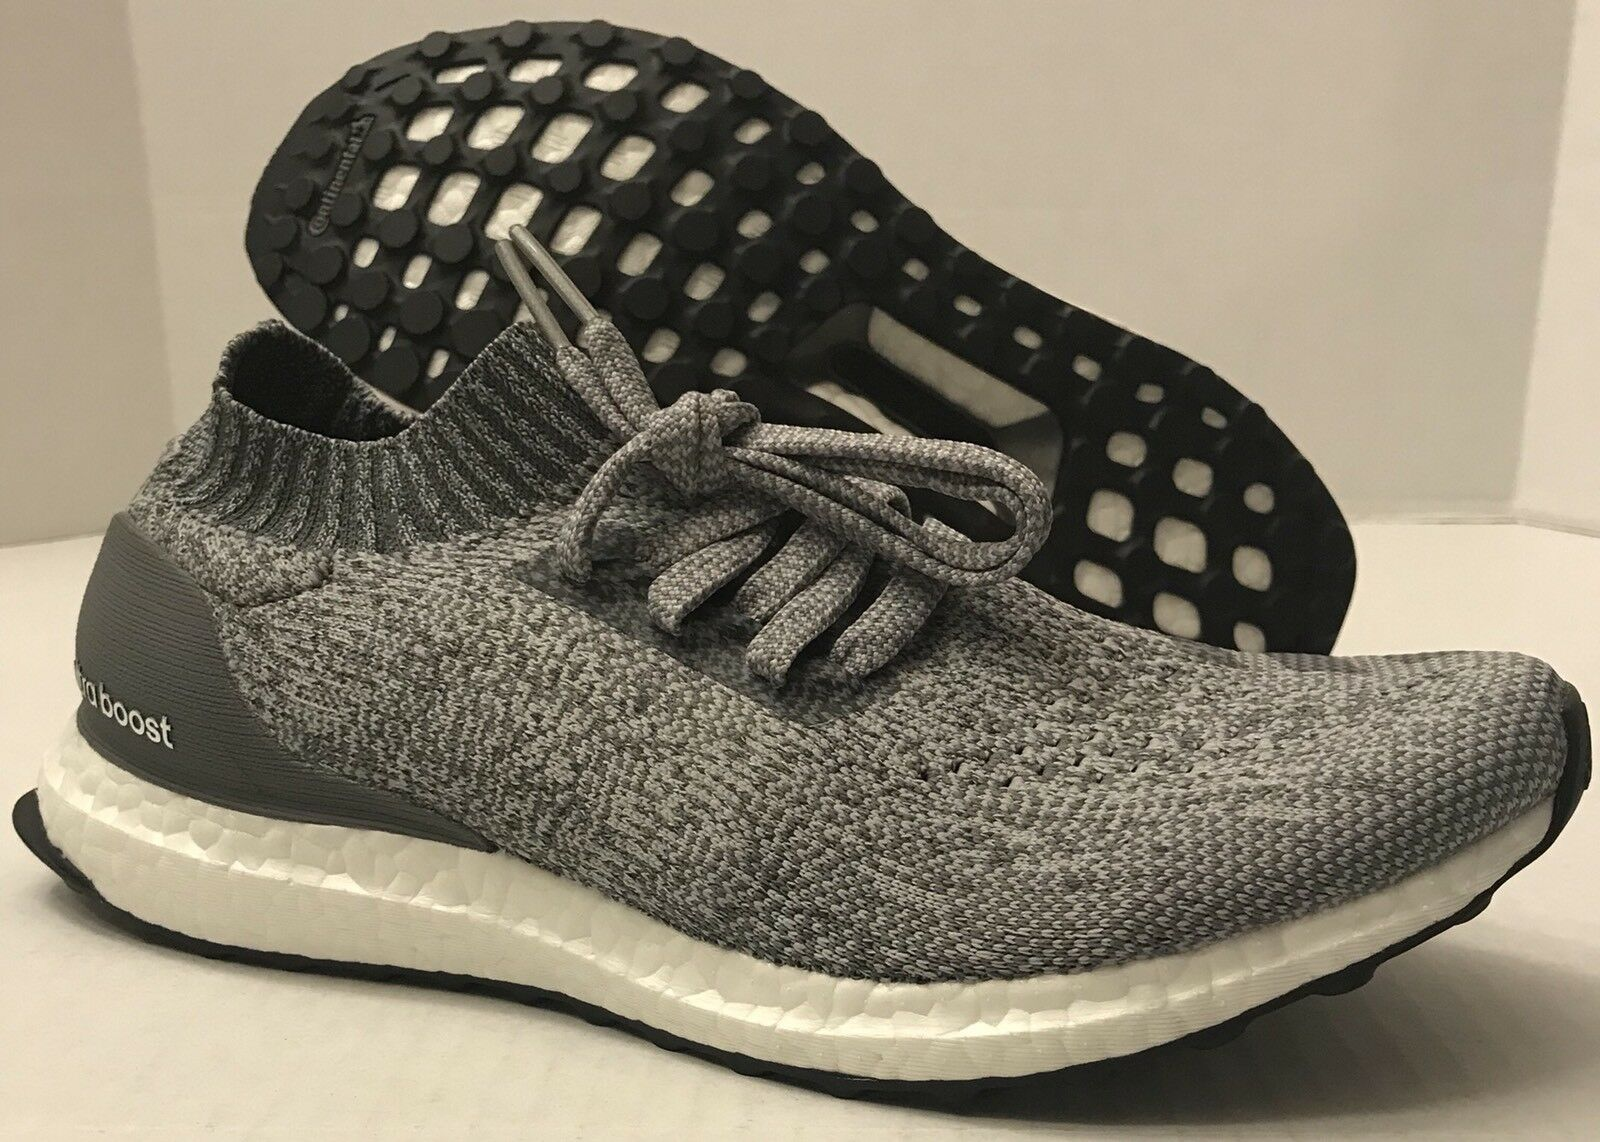 ADIDAS UltraBOOST Uncaged BY2550 Grey White (MEN'S 8.5) NO BOX ultra boost